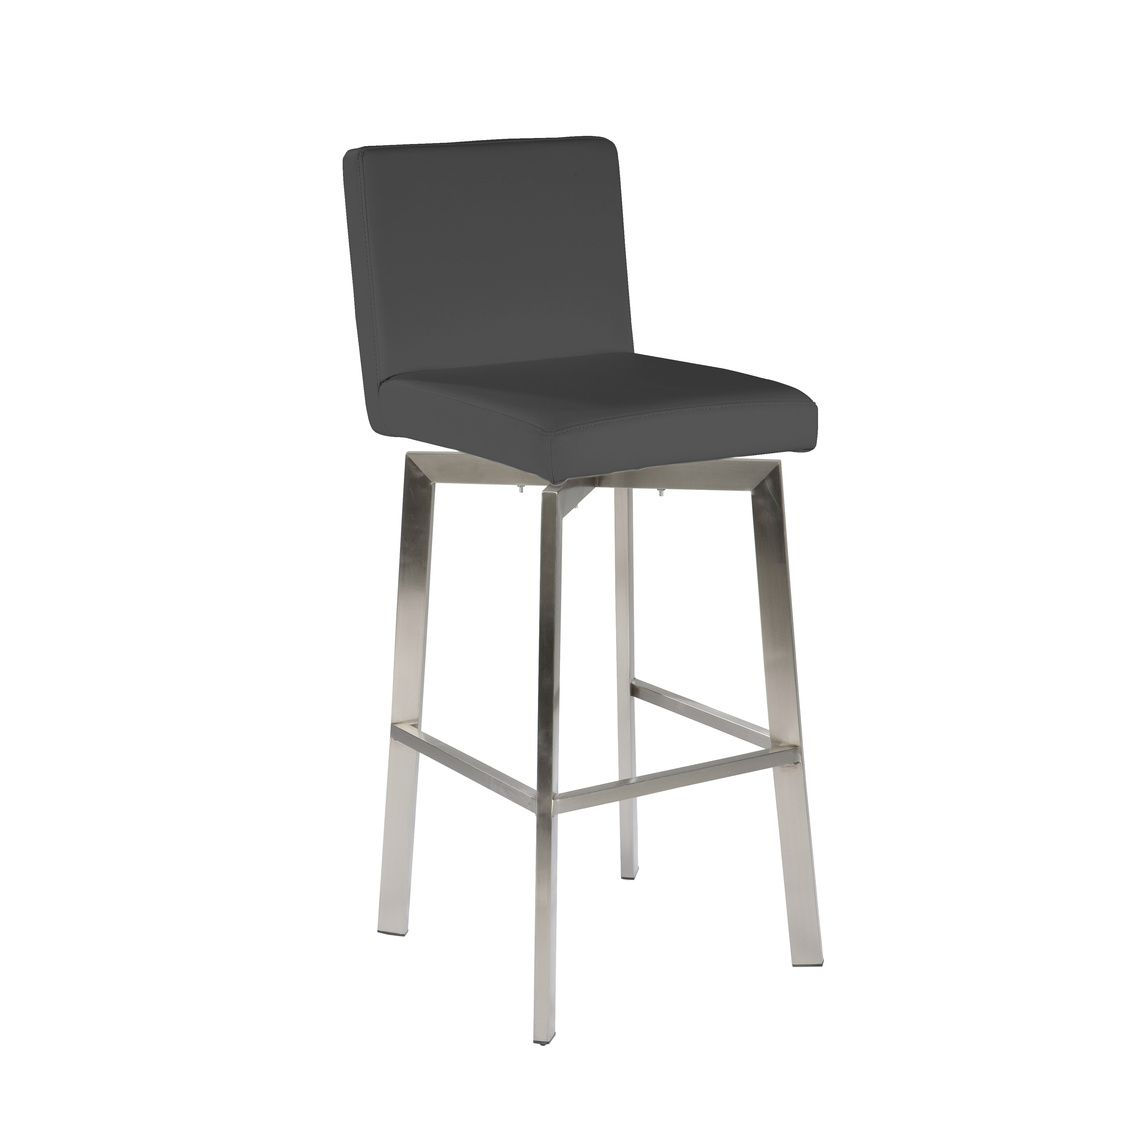 Bar Stools Counter Stools Rme 1038 02 Bar Counter Stool With